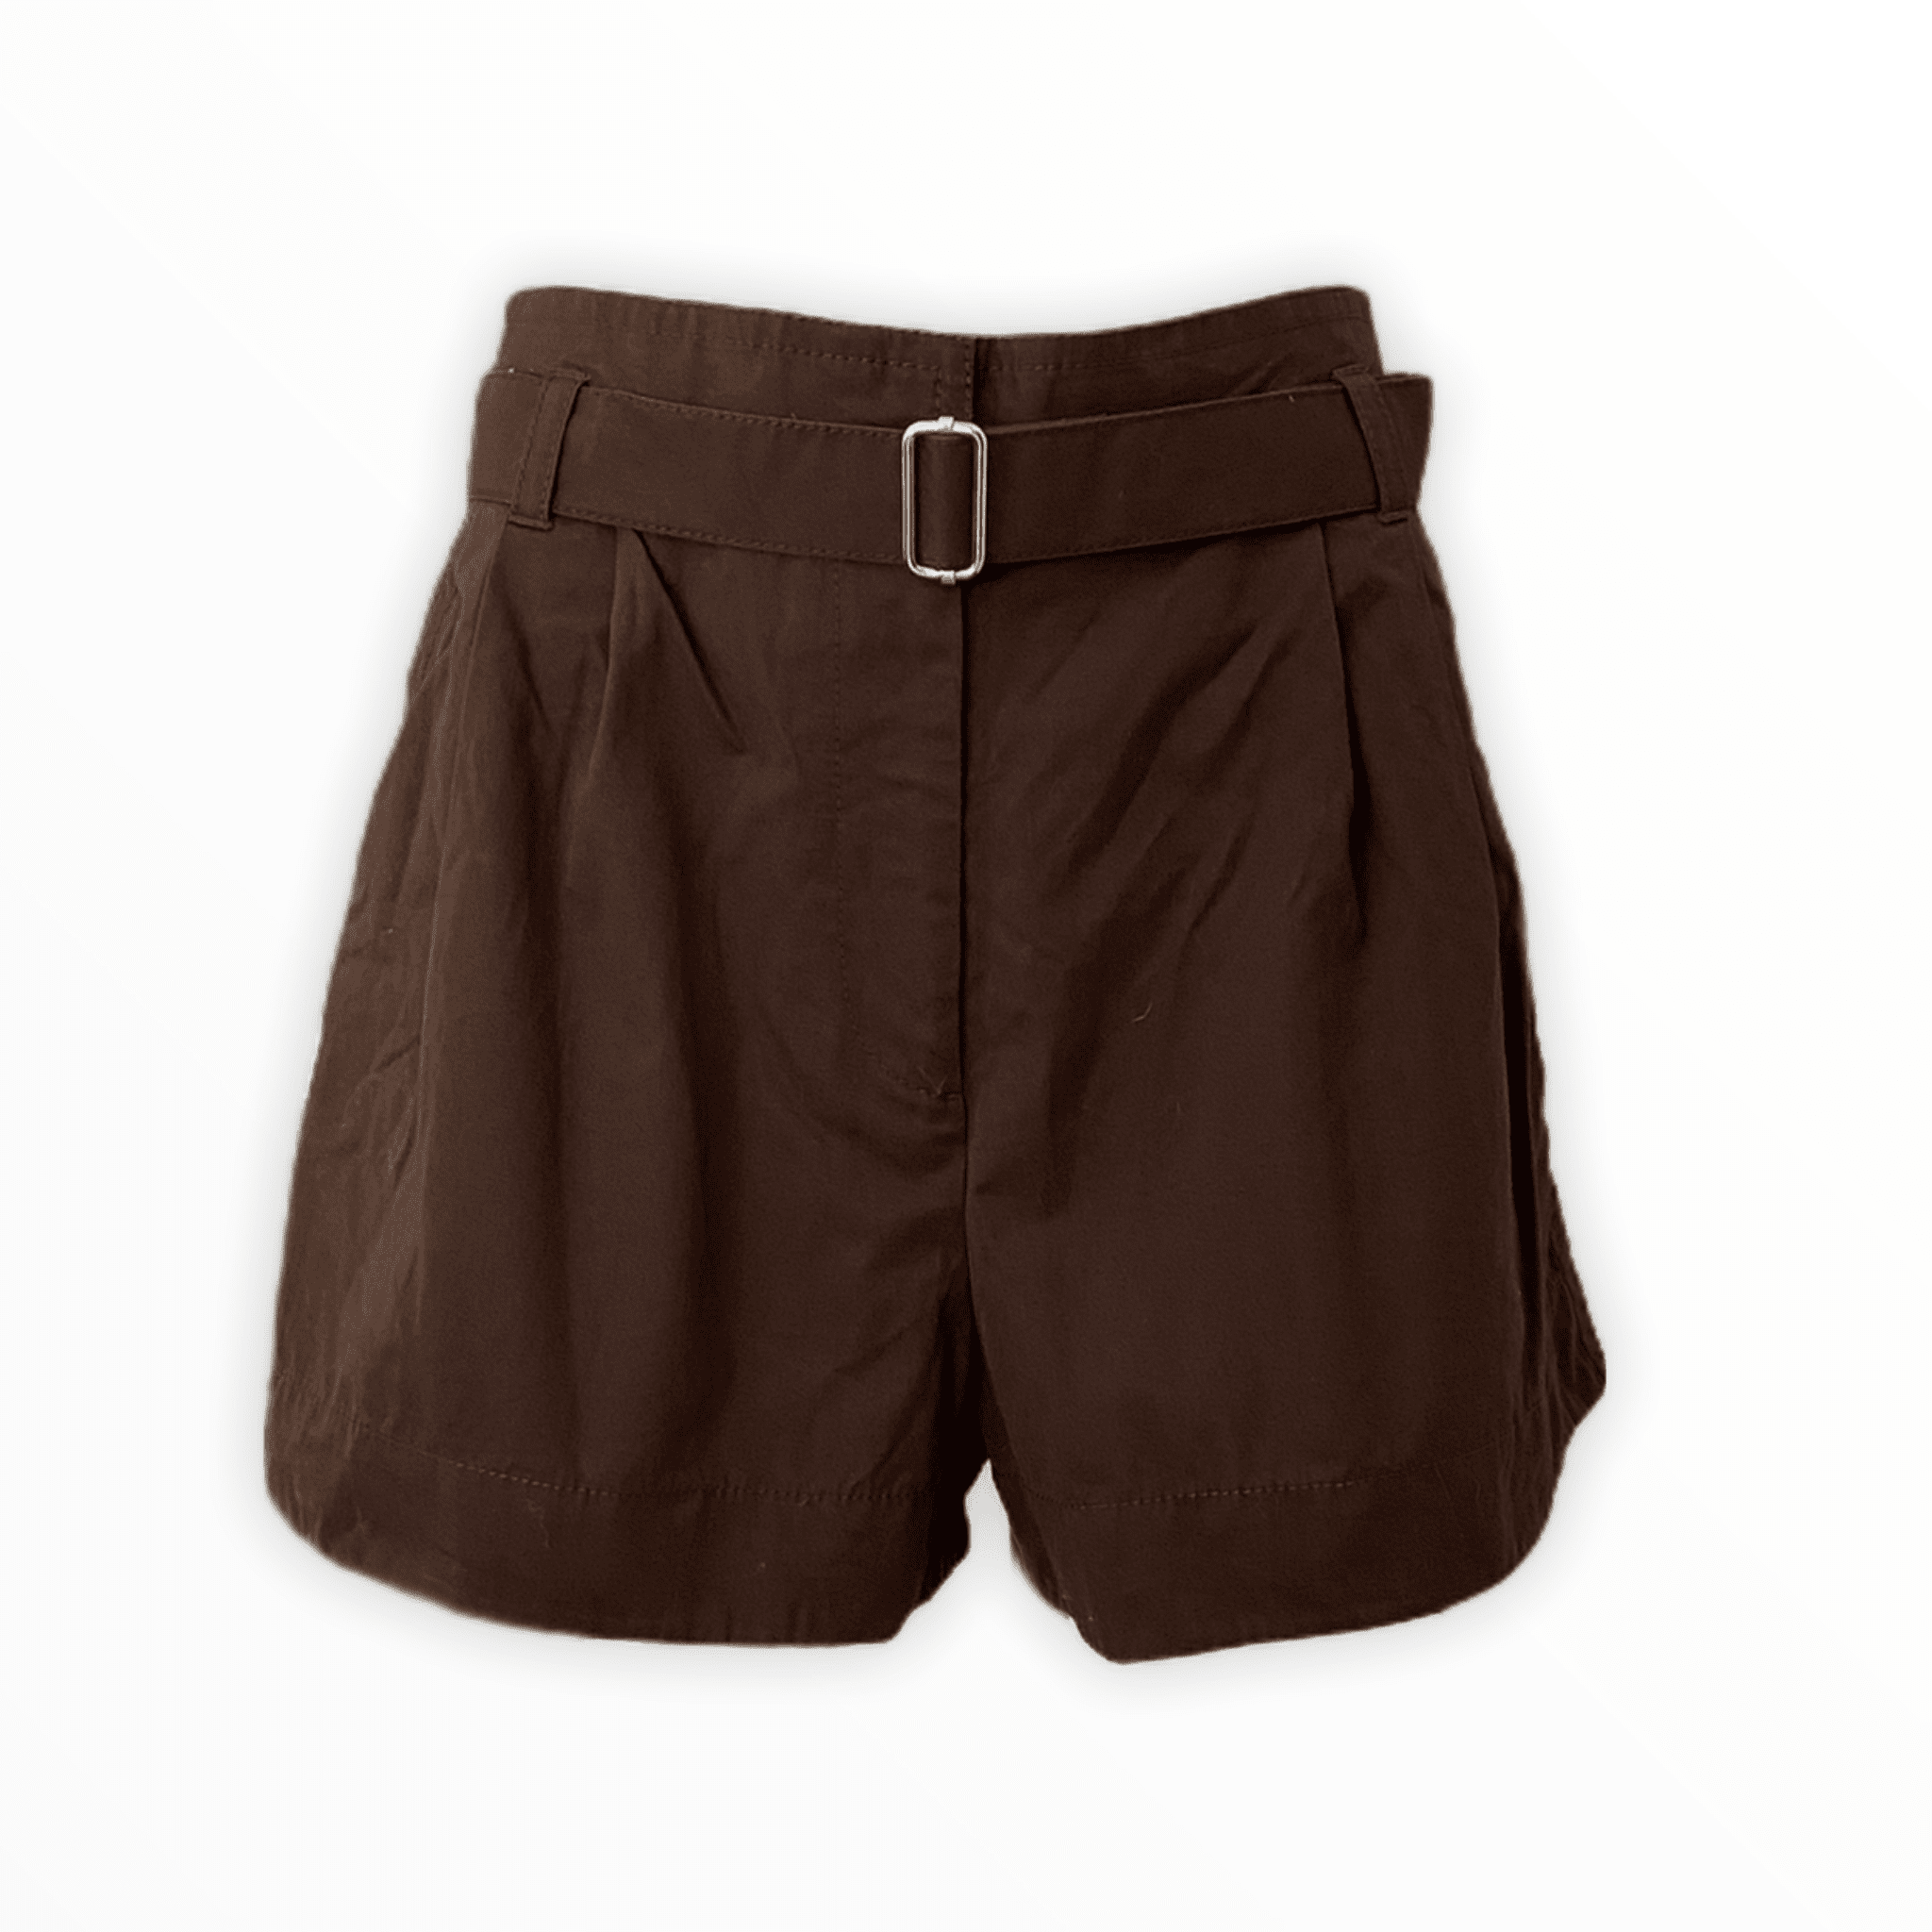 MARC BY MARC JACOBS shorts M